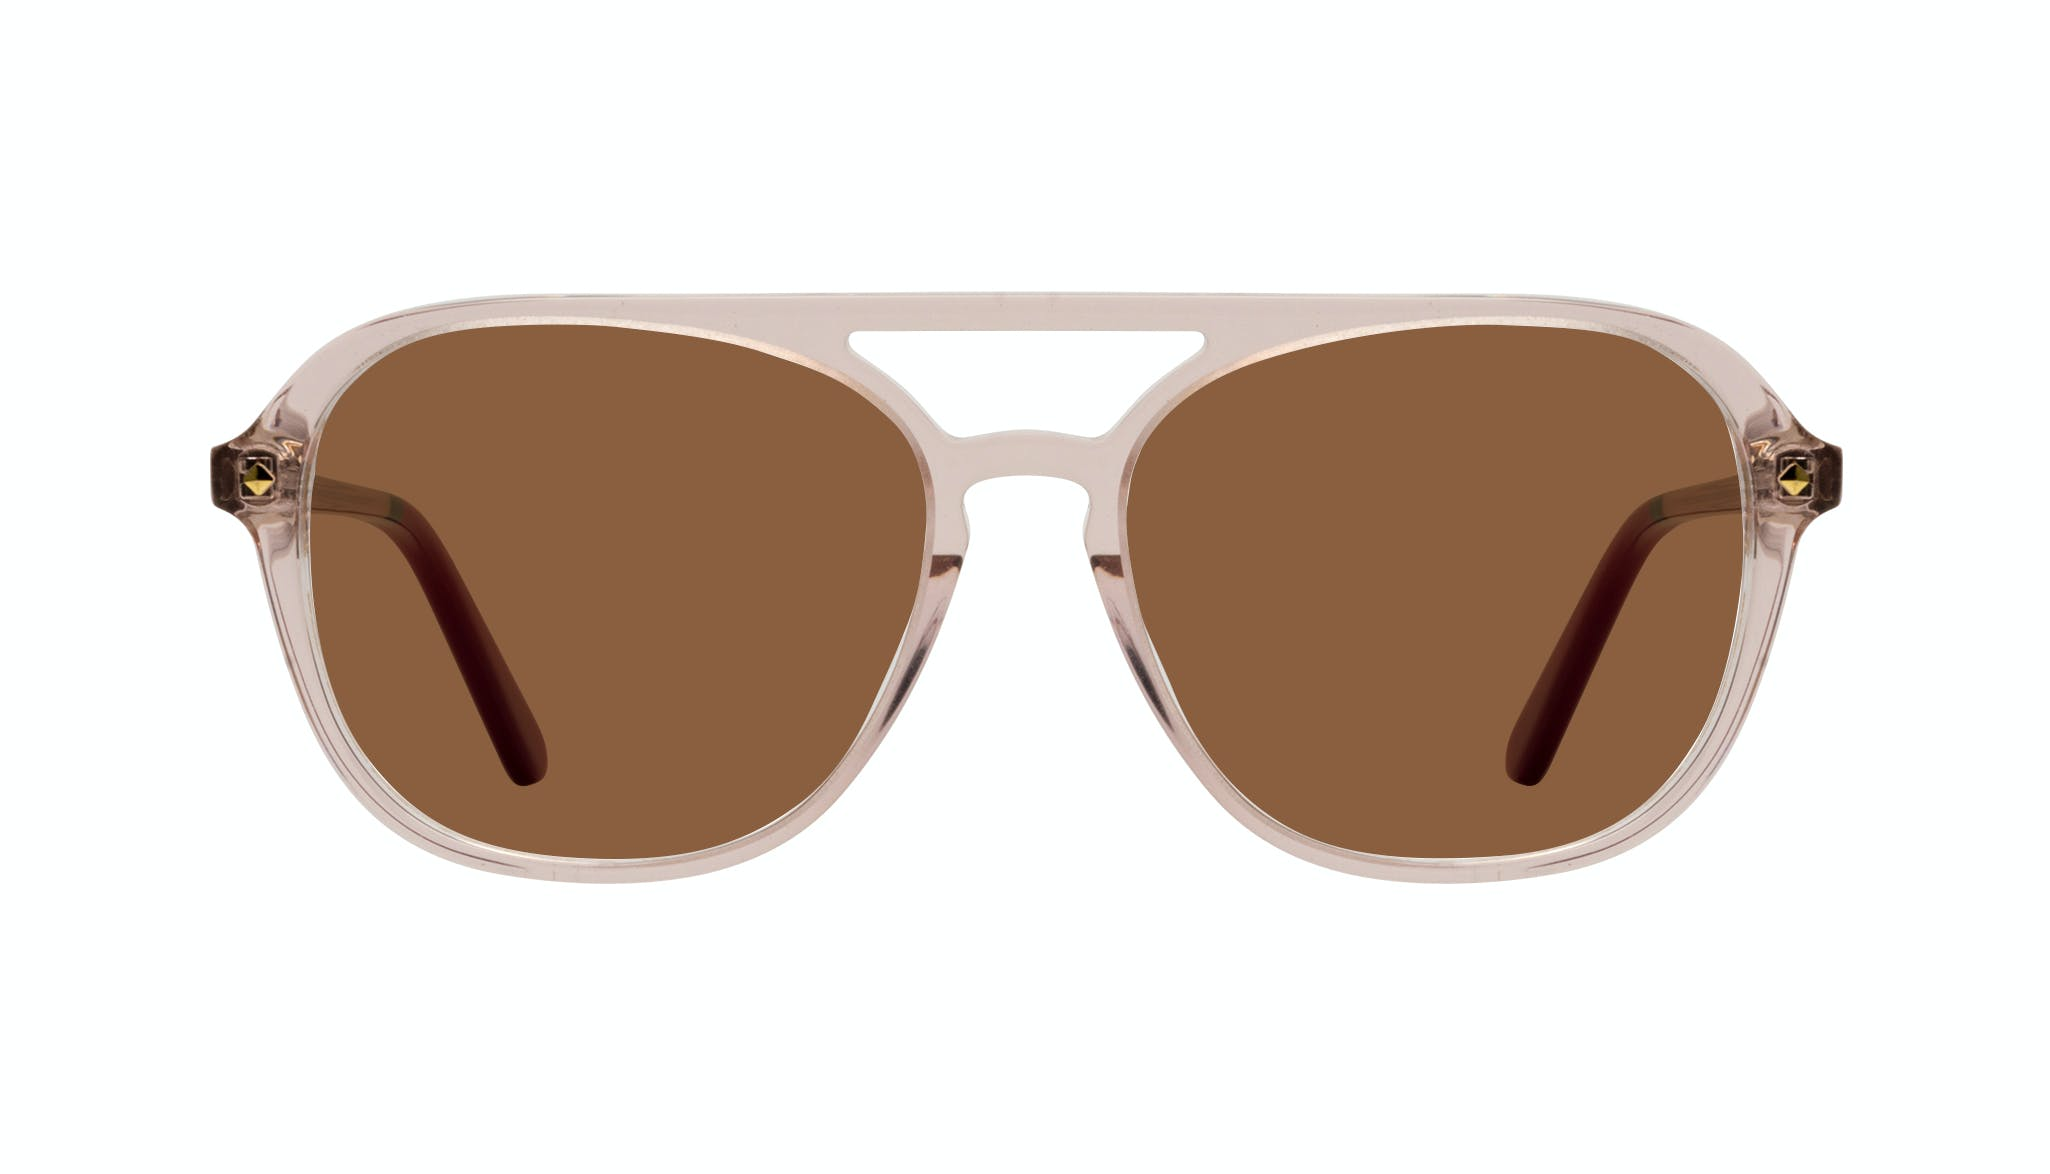 Affordable Fashion Glasses Aviator Sunglasses Women Jerry Rose Front